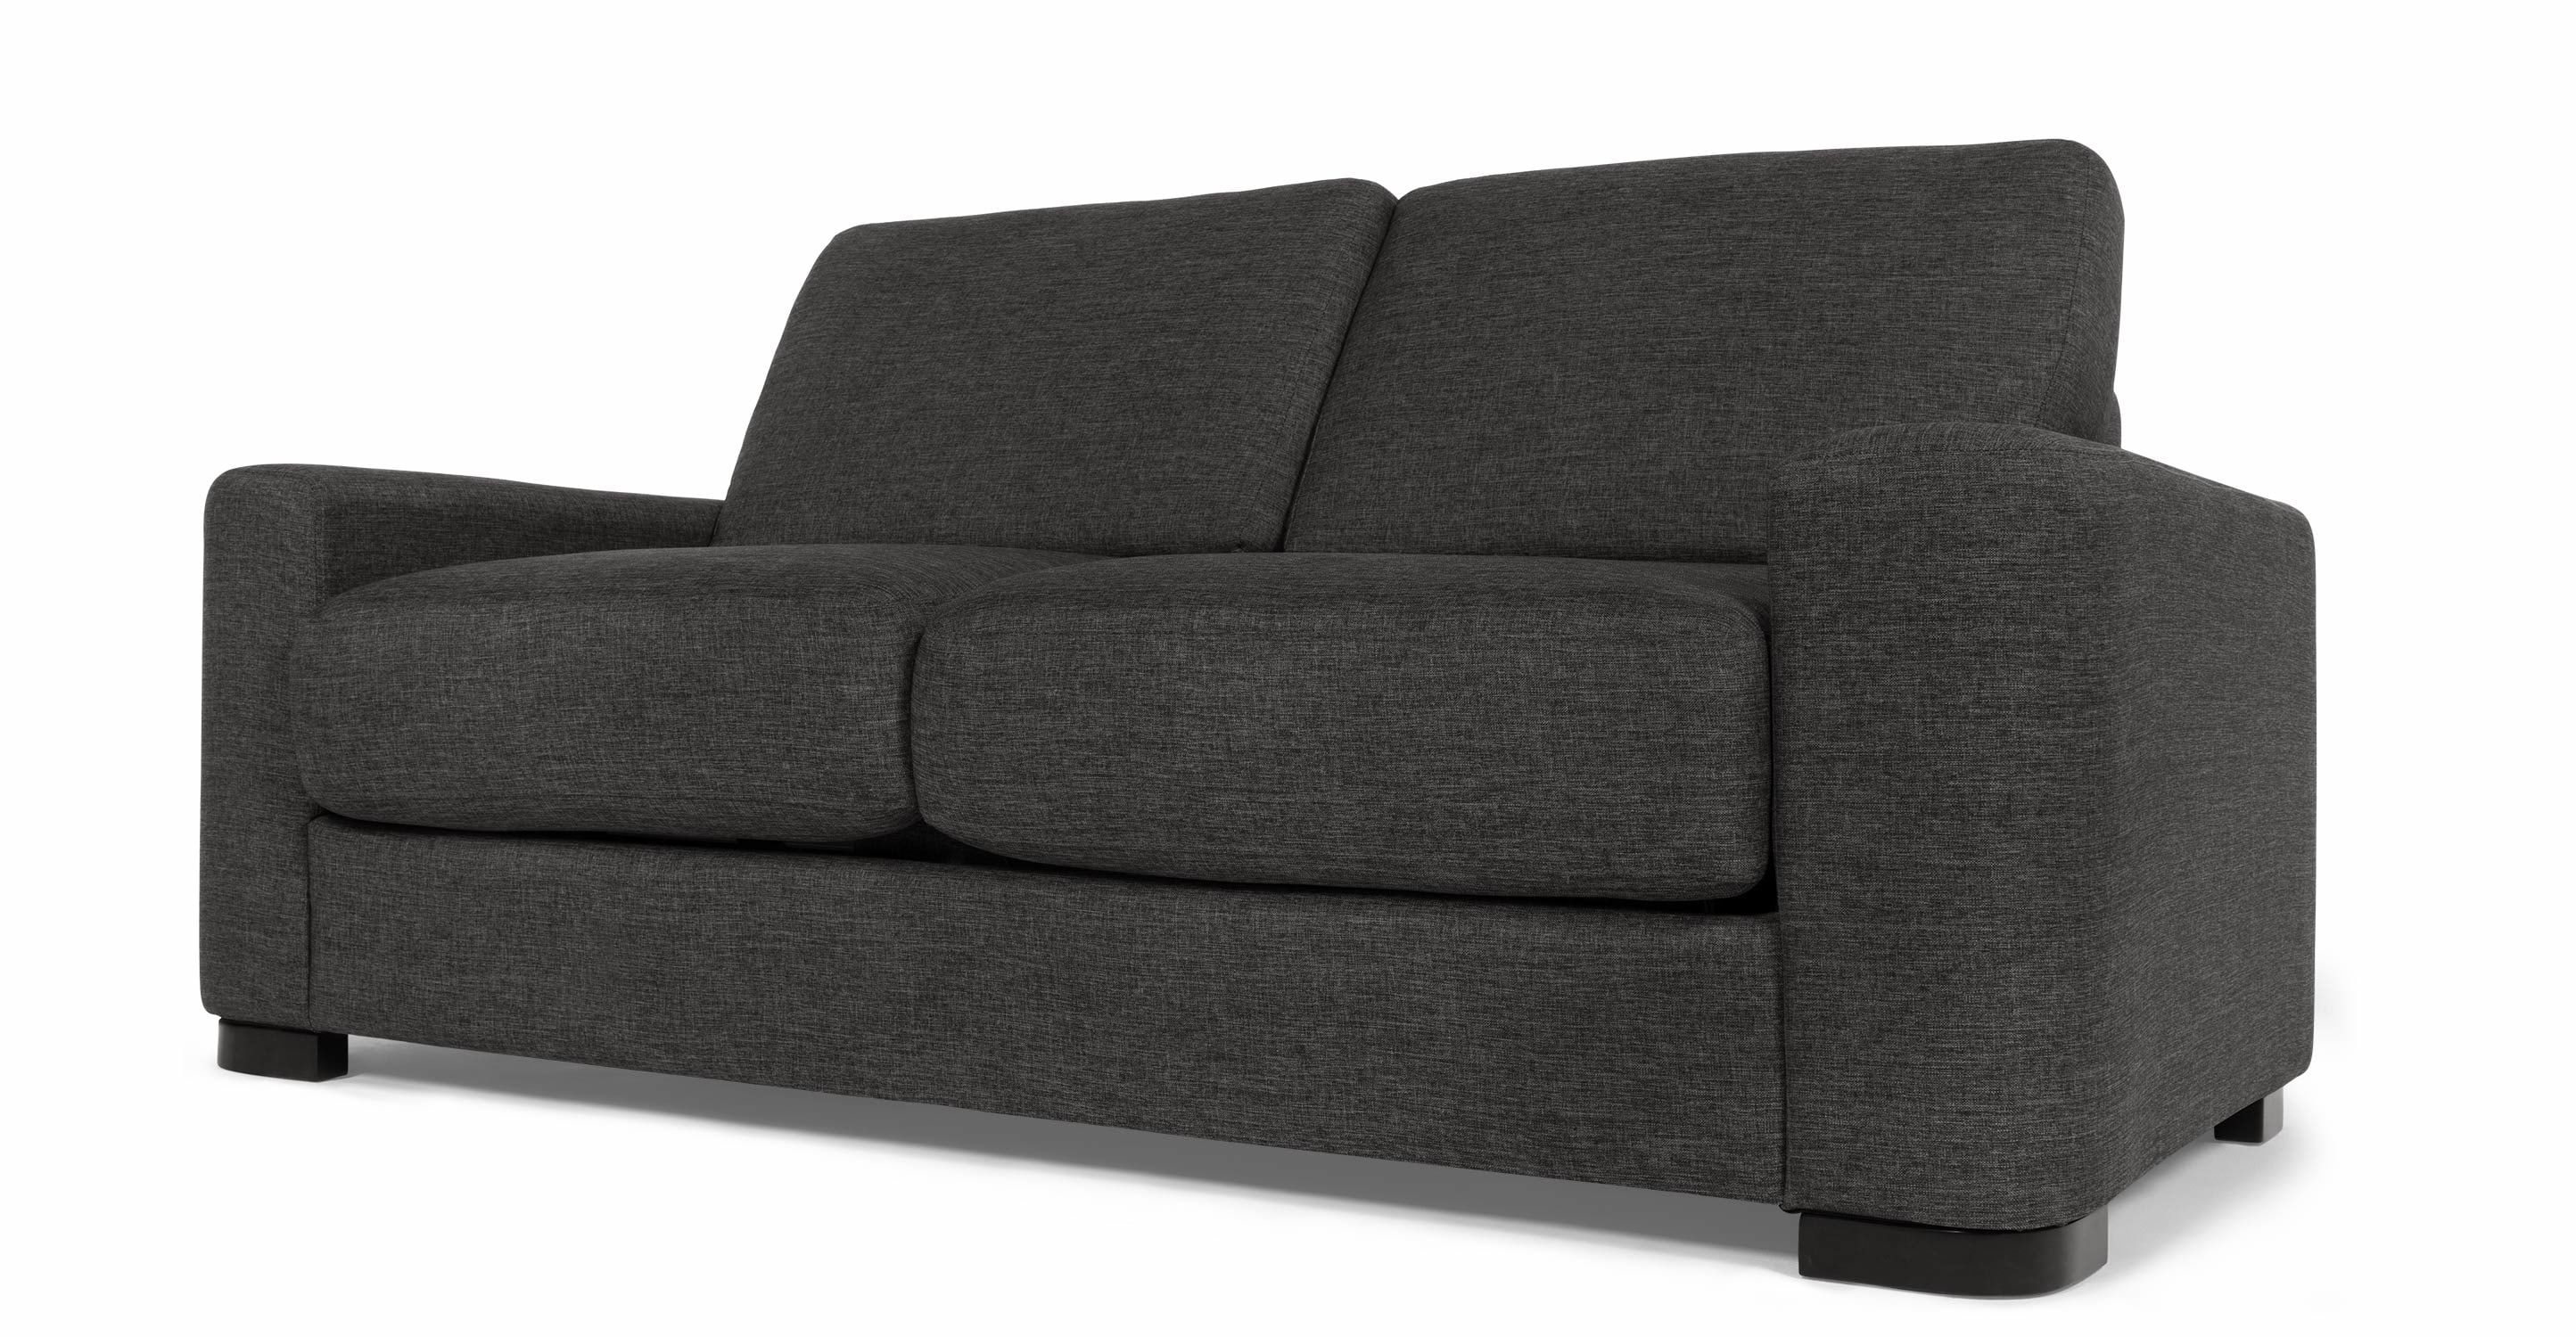 Lovely Canape Convertible D Angle Couchage Quotidien